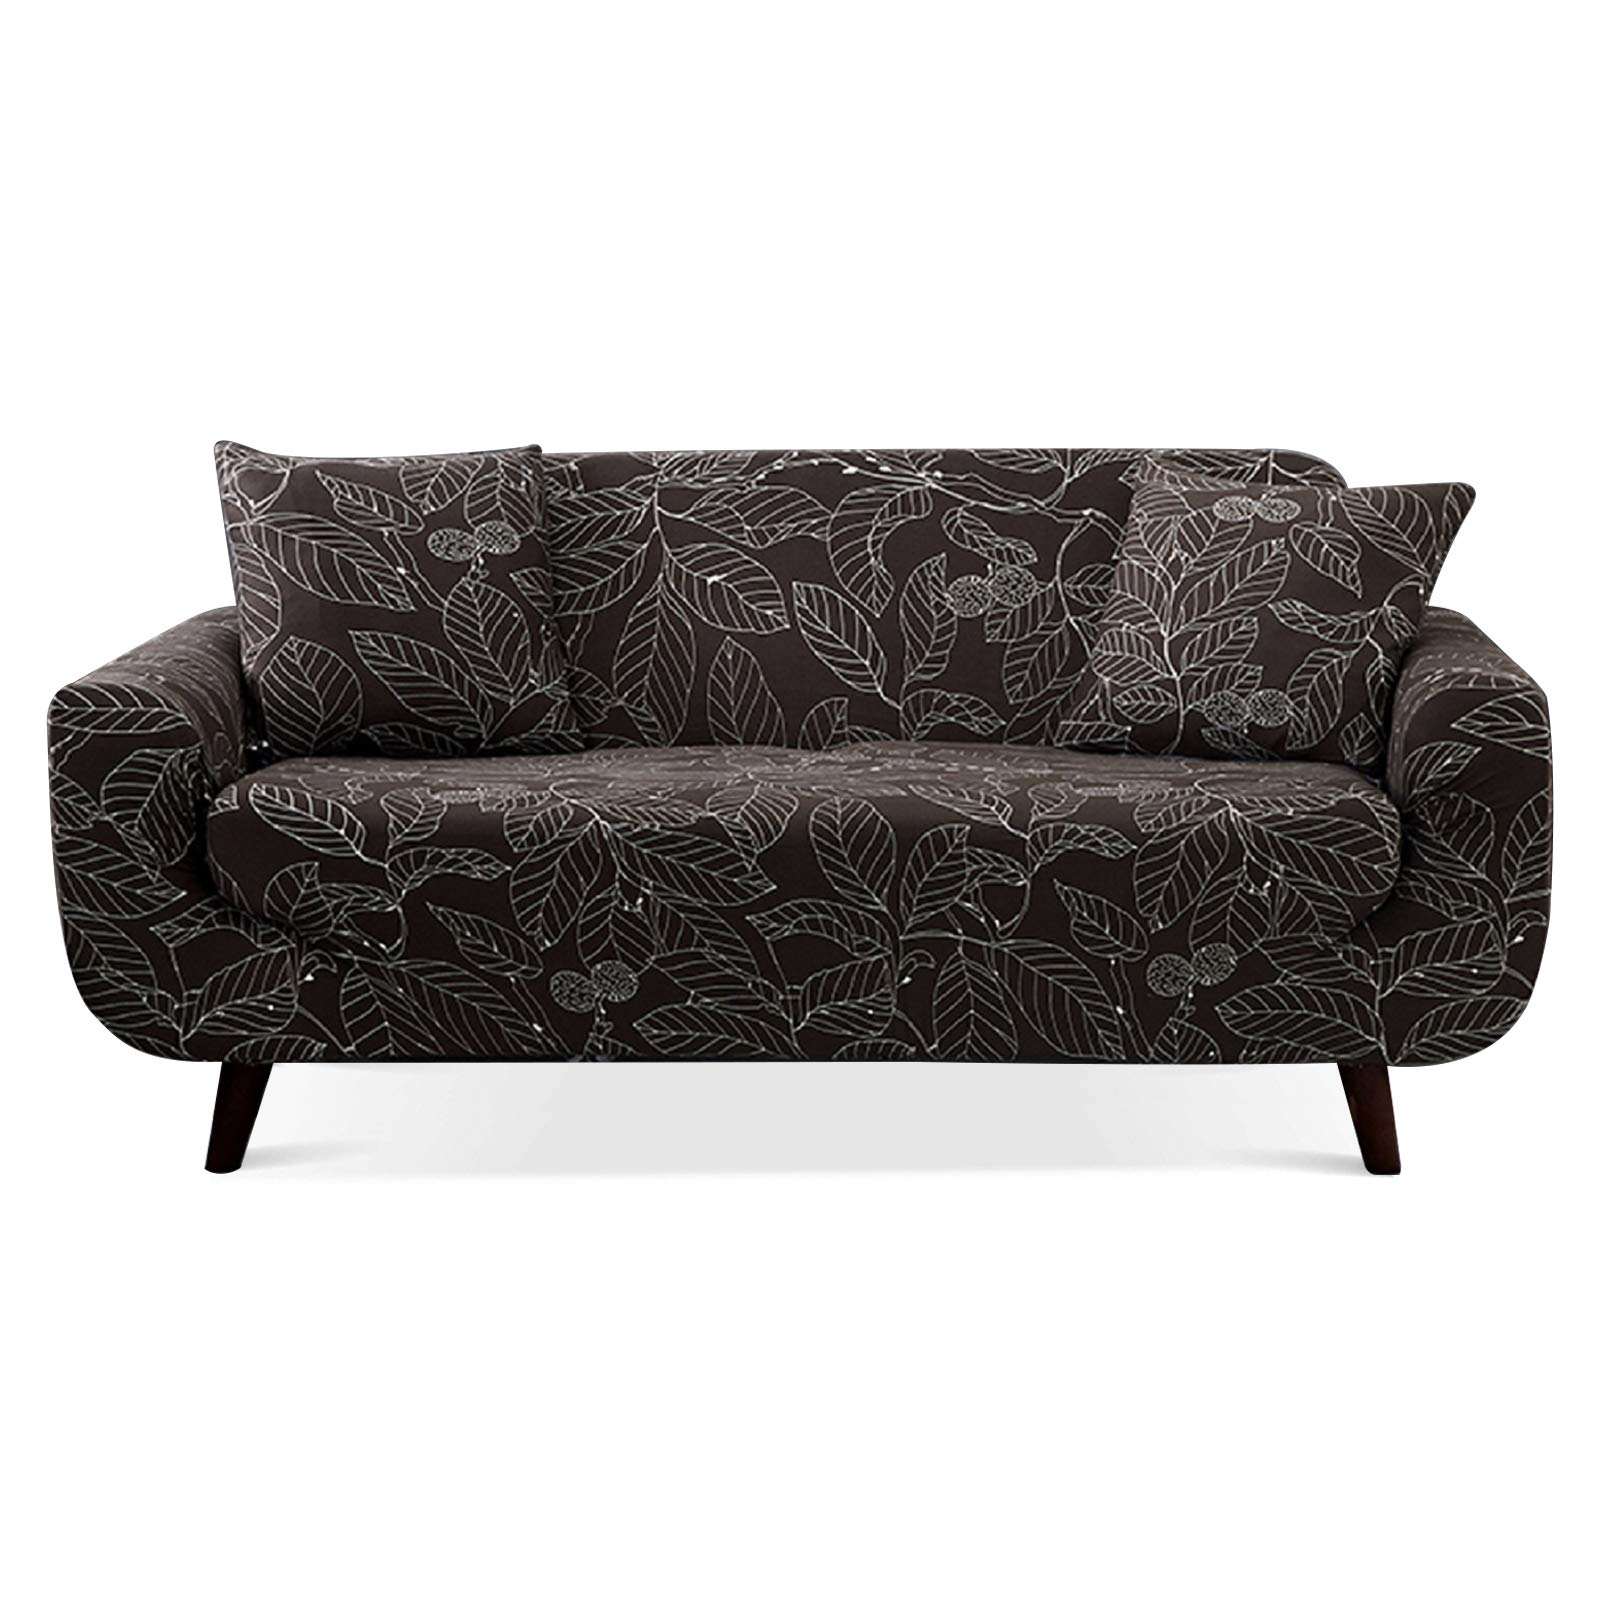 Lamberia Printed Sofa Cover Stretch Couch Cover Sofa Slipcovers for 3 Cushion Couch with Two Free Pillow Case (Coffee Leav...